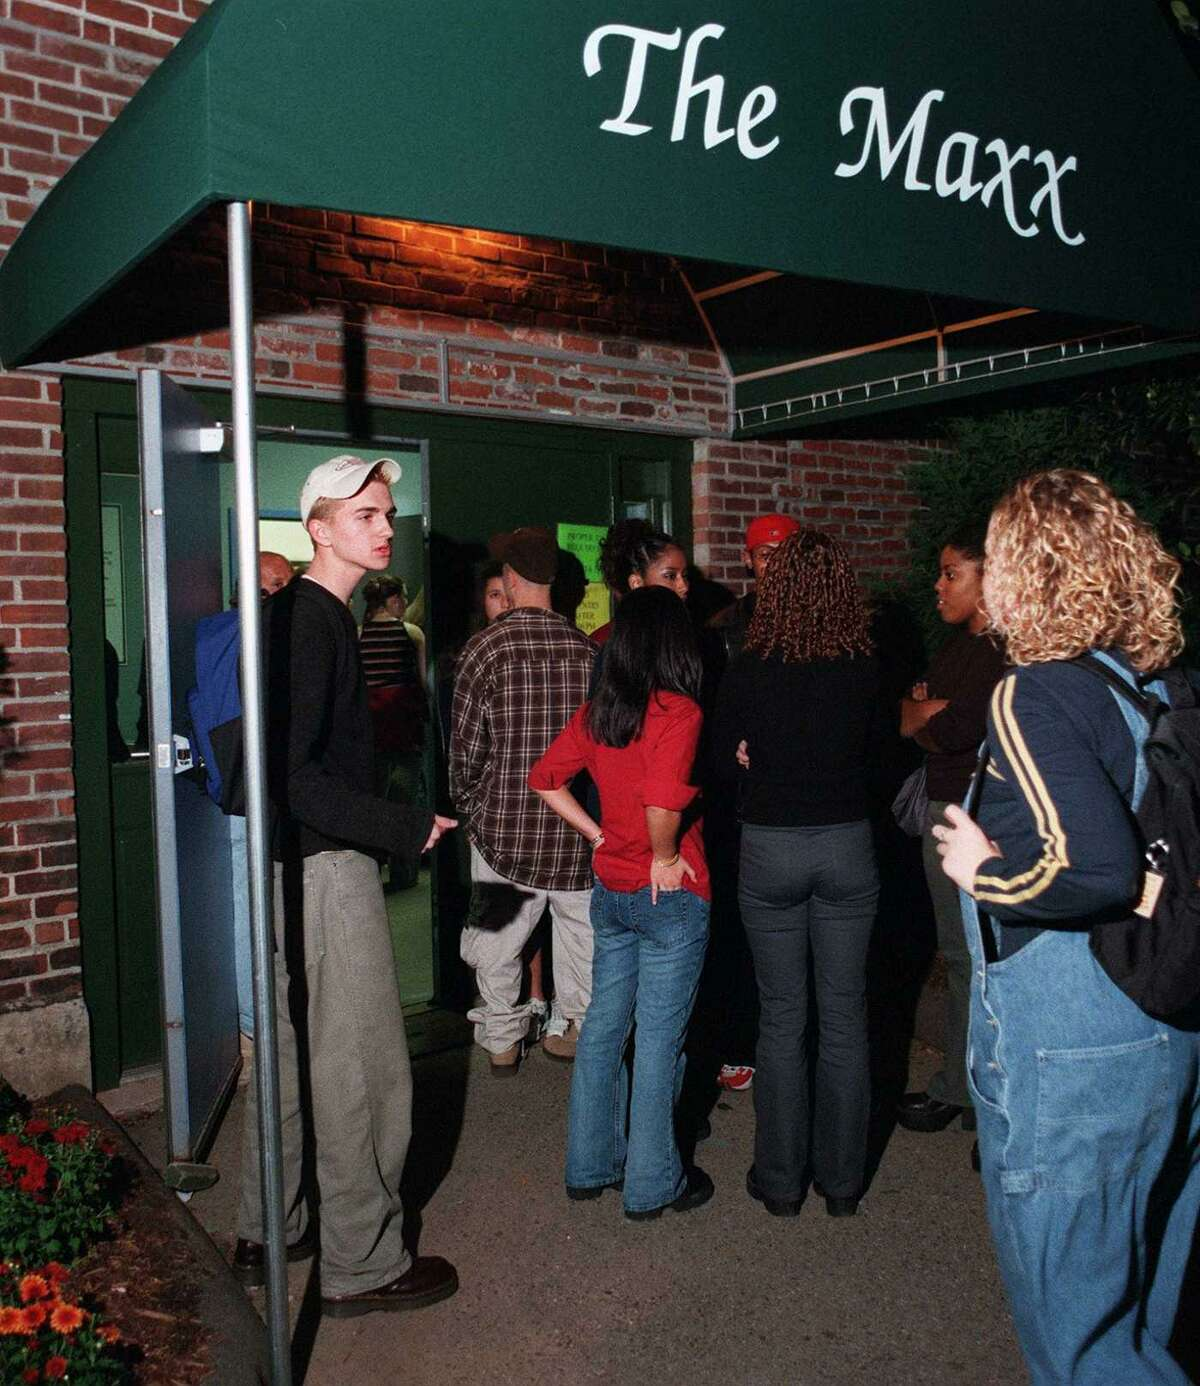 The Maxx, New Milford's new nightspot for teens, opened Friday night Sept. 17 1999.